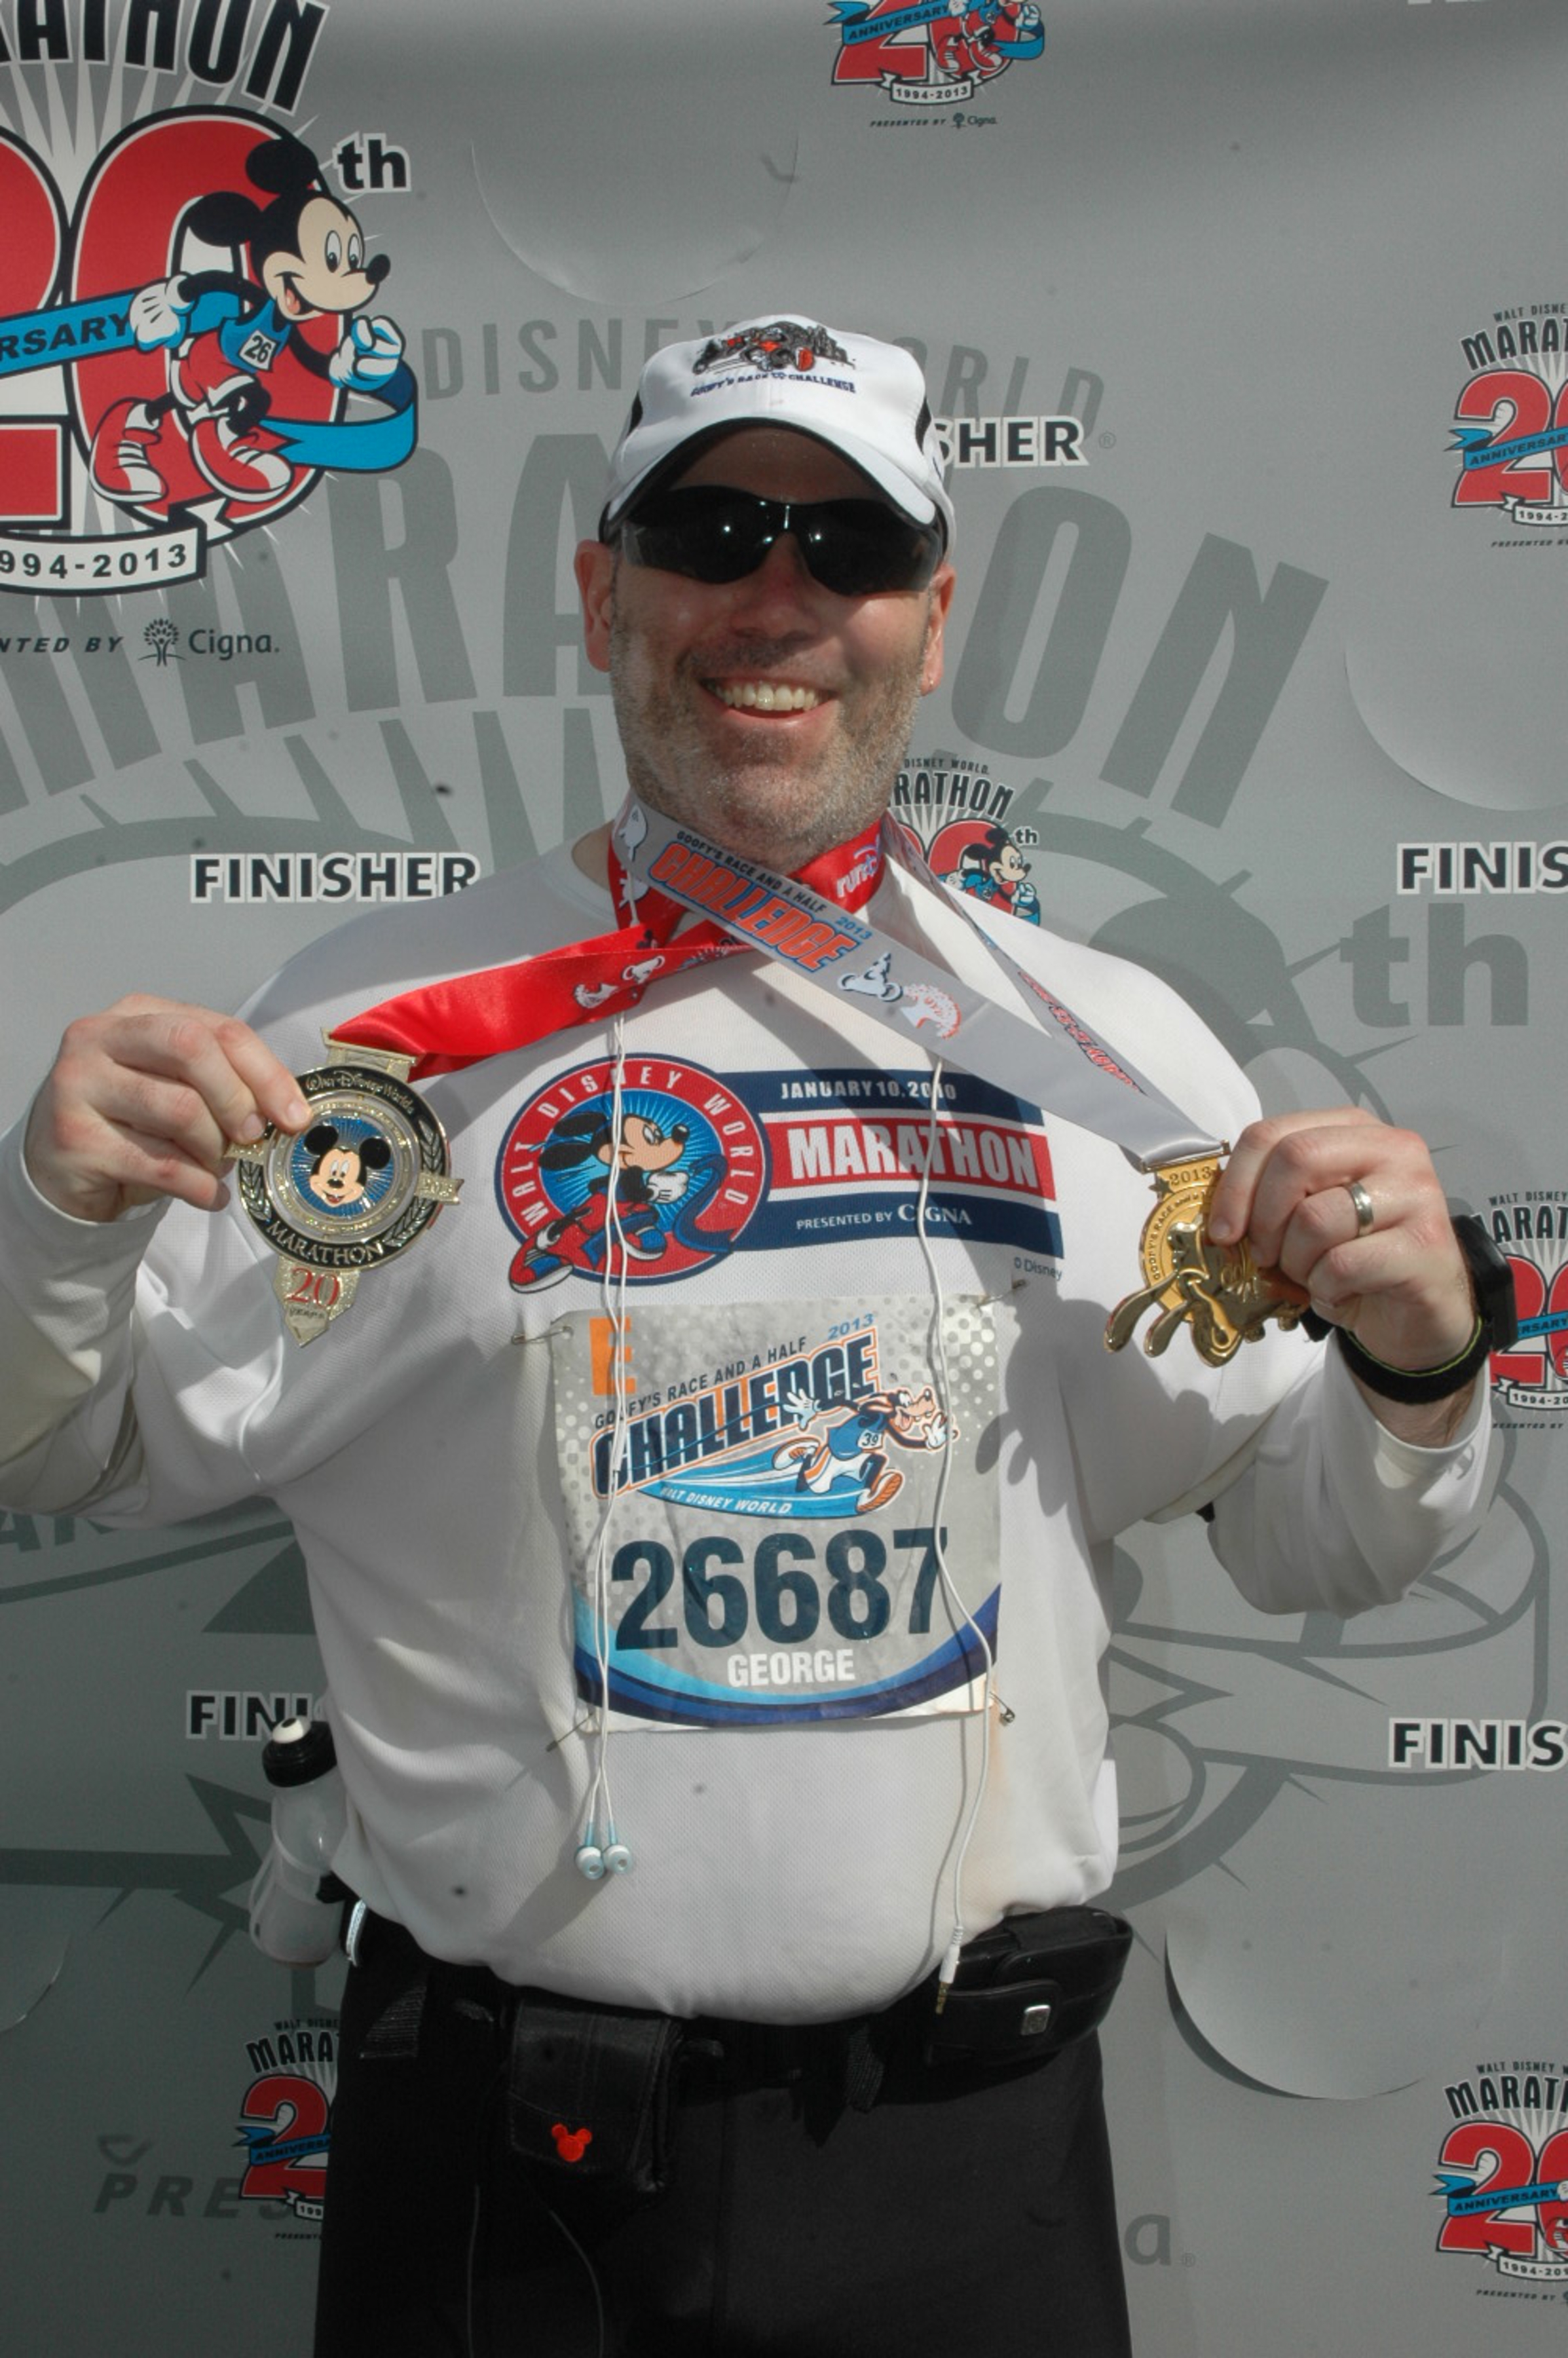 2013 Disney World Marathon - completed